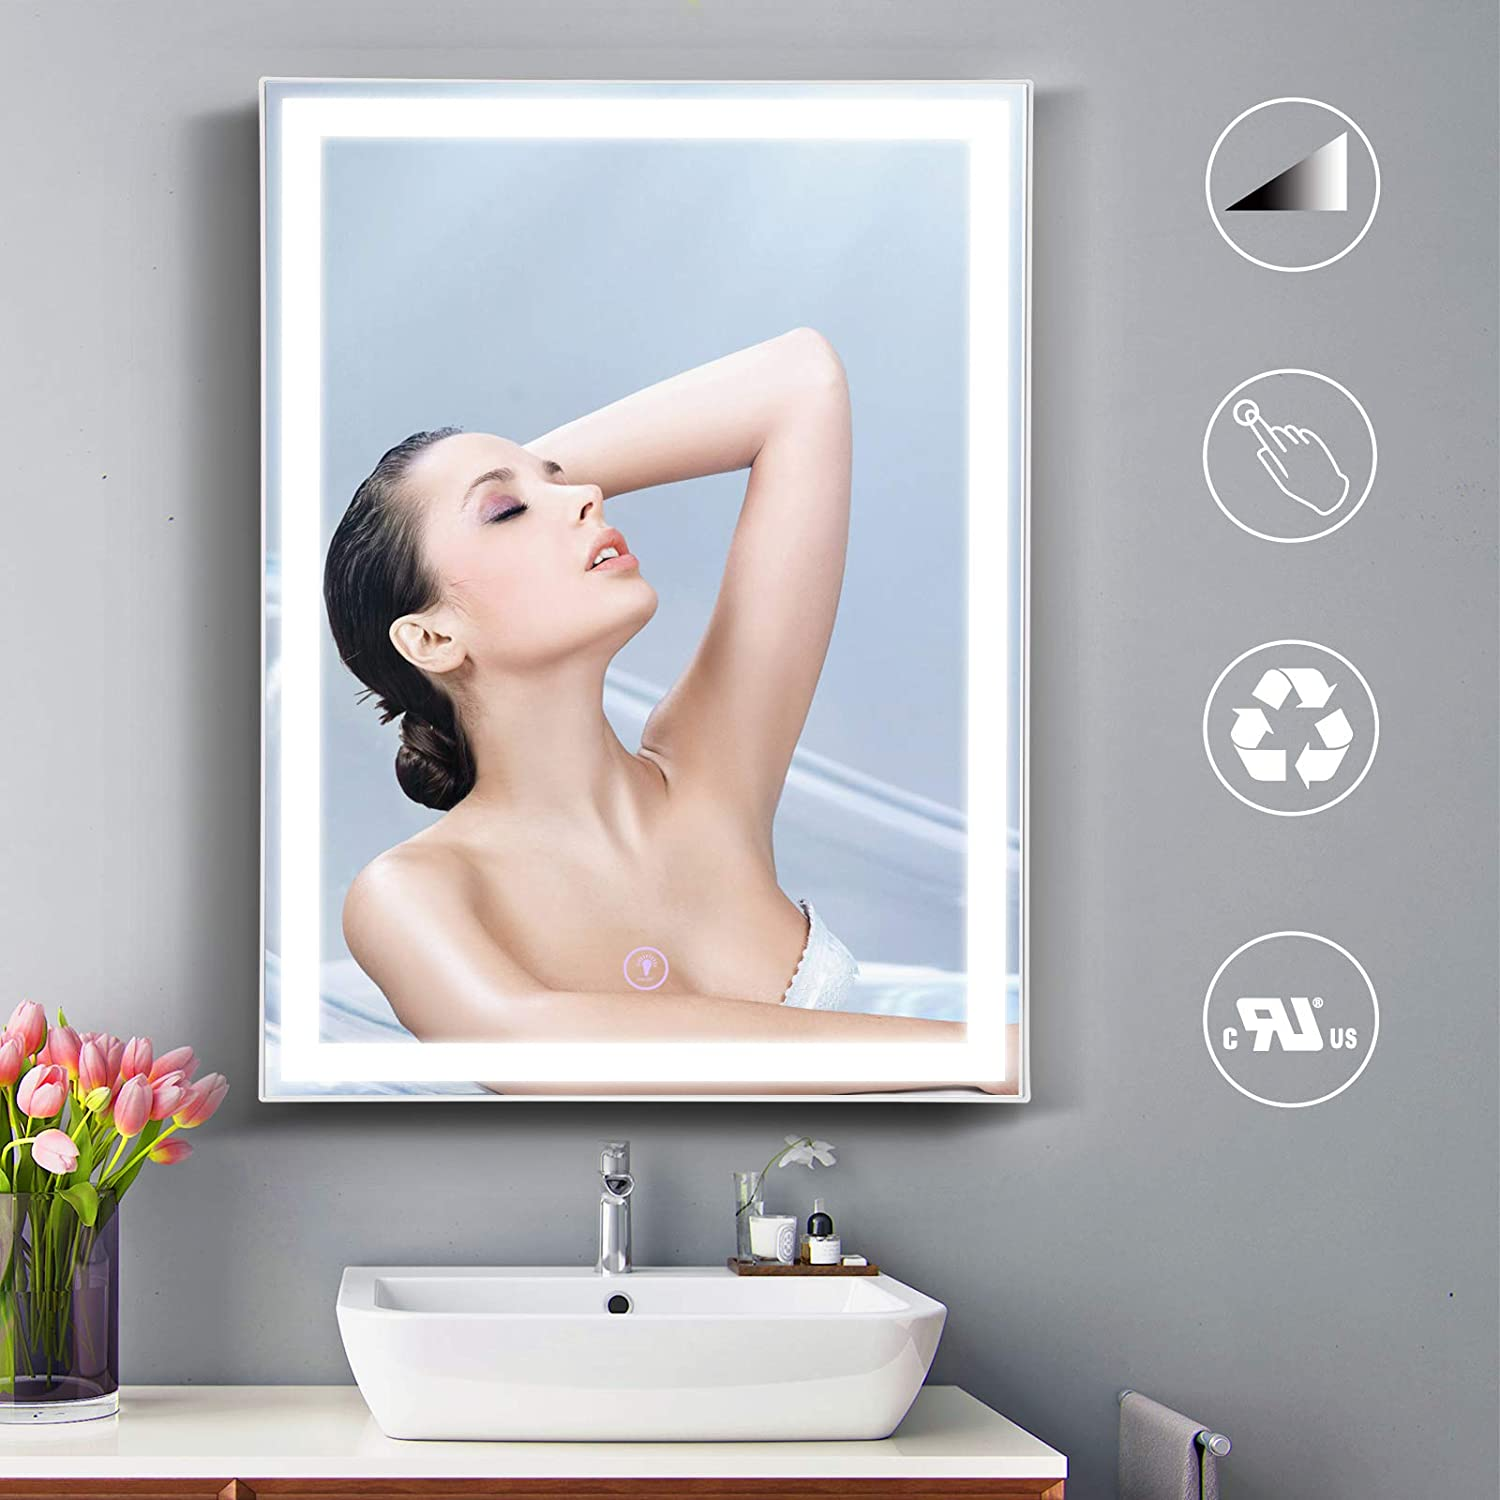 OOWOLF LED Directly managed store Bathroom Mirror with Lights Dim 32x24 - Our shop OFFers the best service Anti-Fog Inch